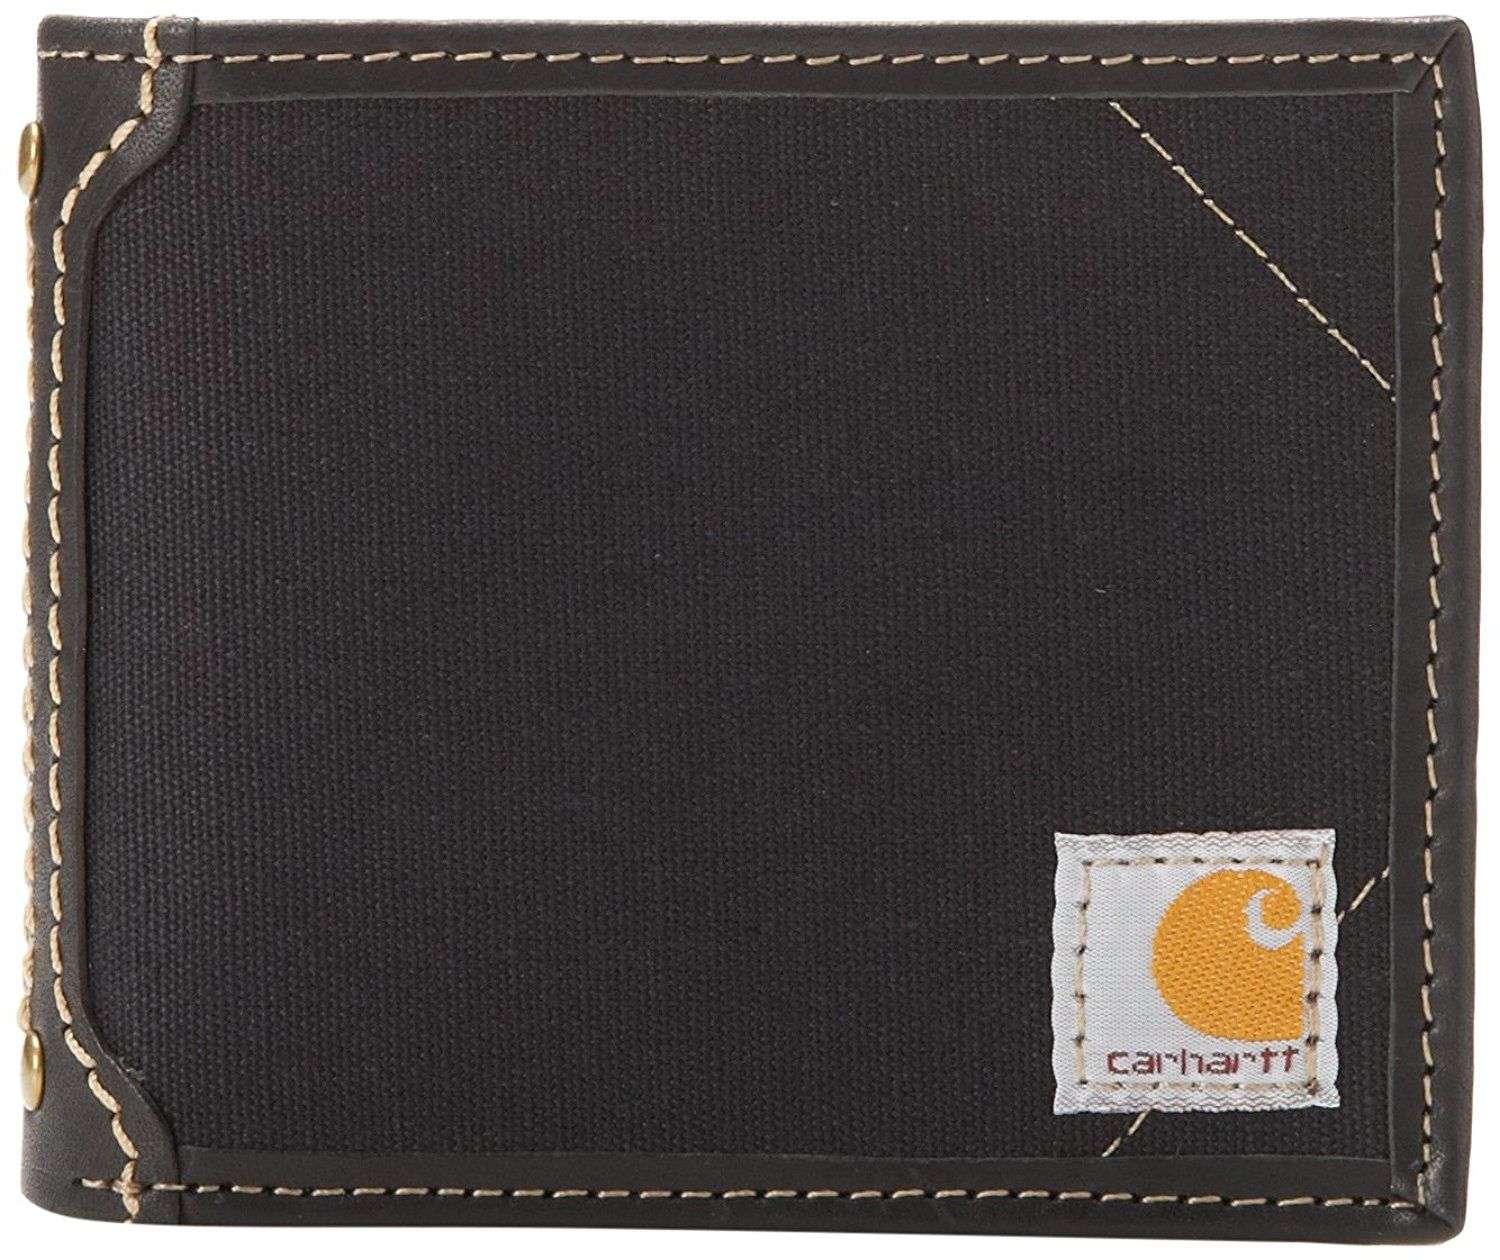 Carhartt mens canvas wallet with removable passcase